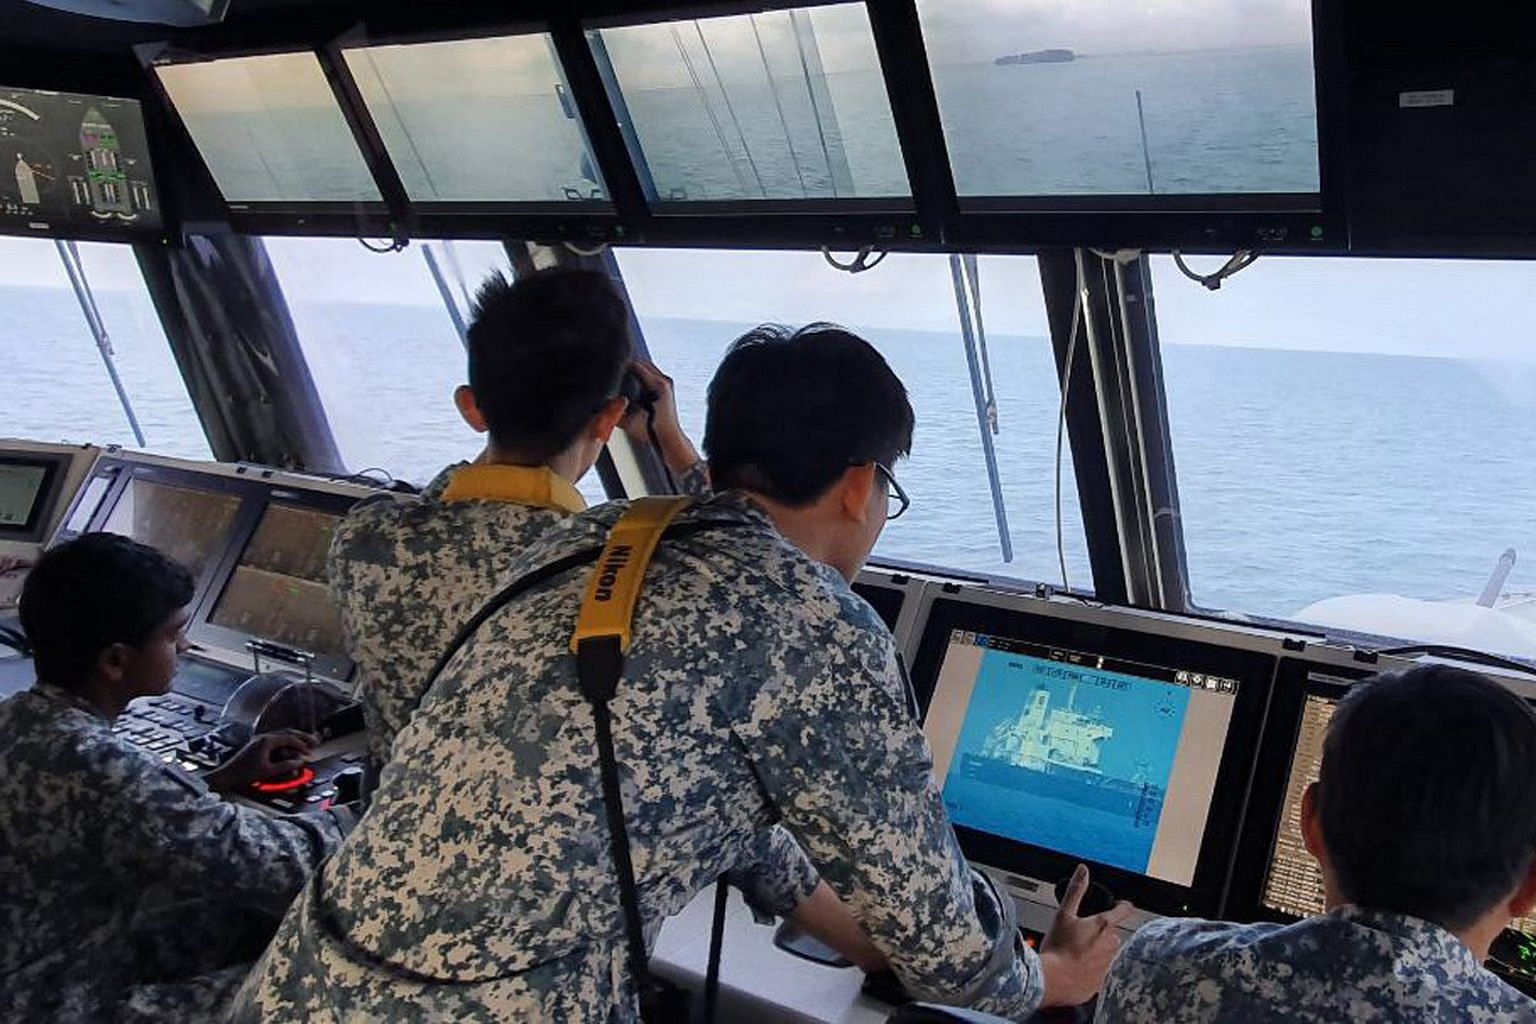 Navy personnel on board RSS Independence monitoring the Sam Jaguar, which was hit by pirates yesterday. PHOTO: MINDEF